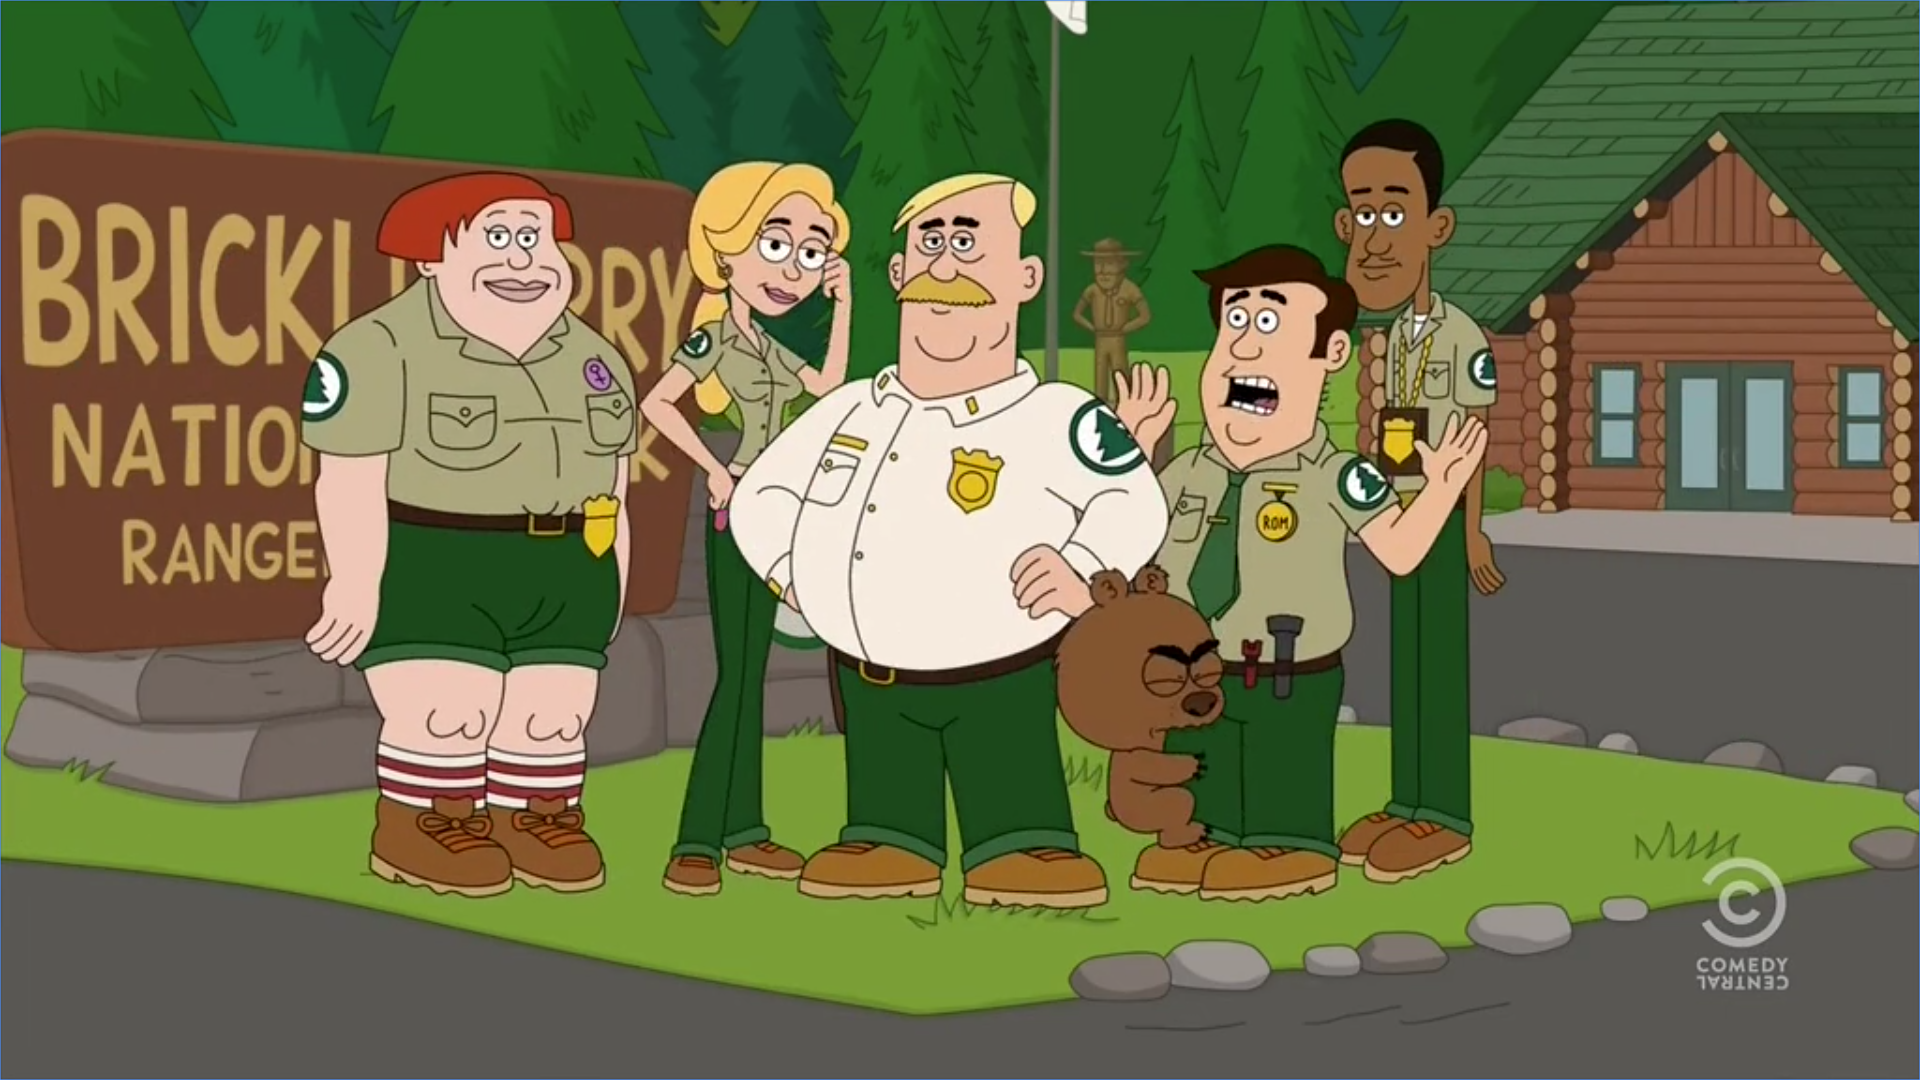 Brickleberry National Park